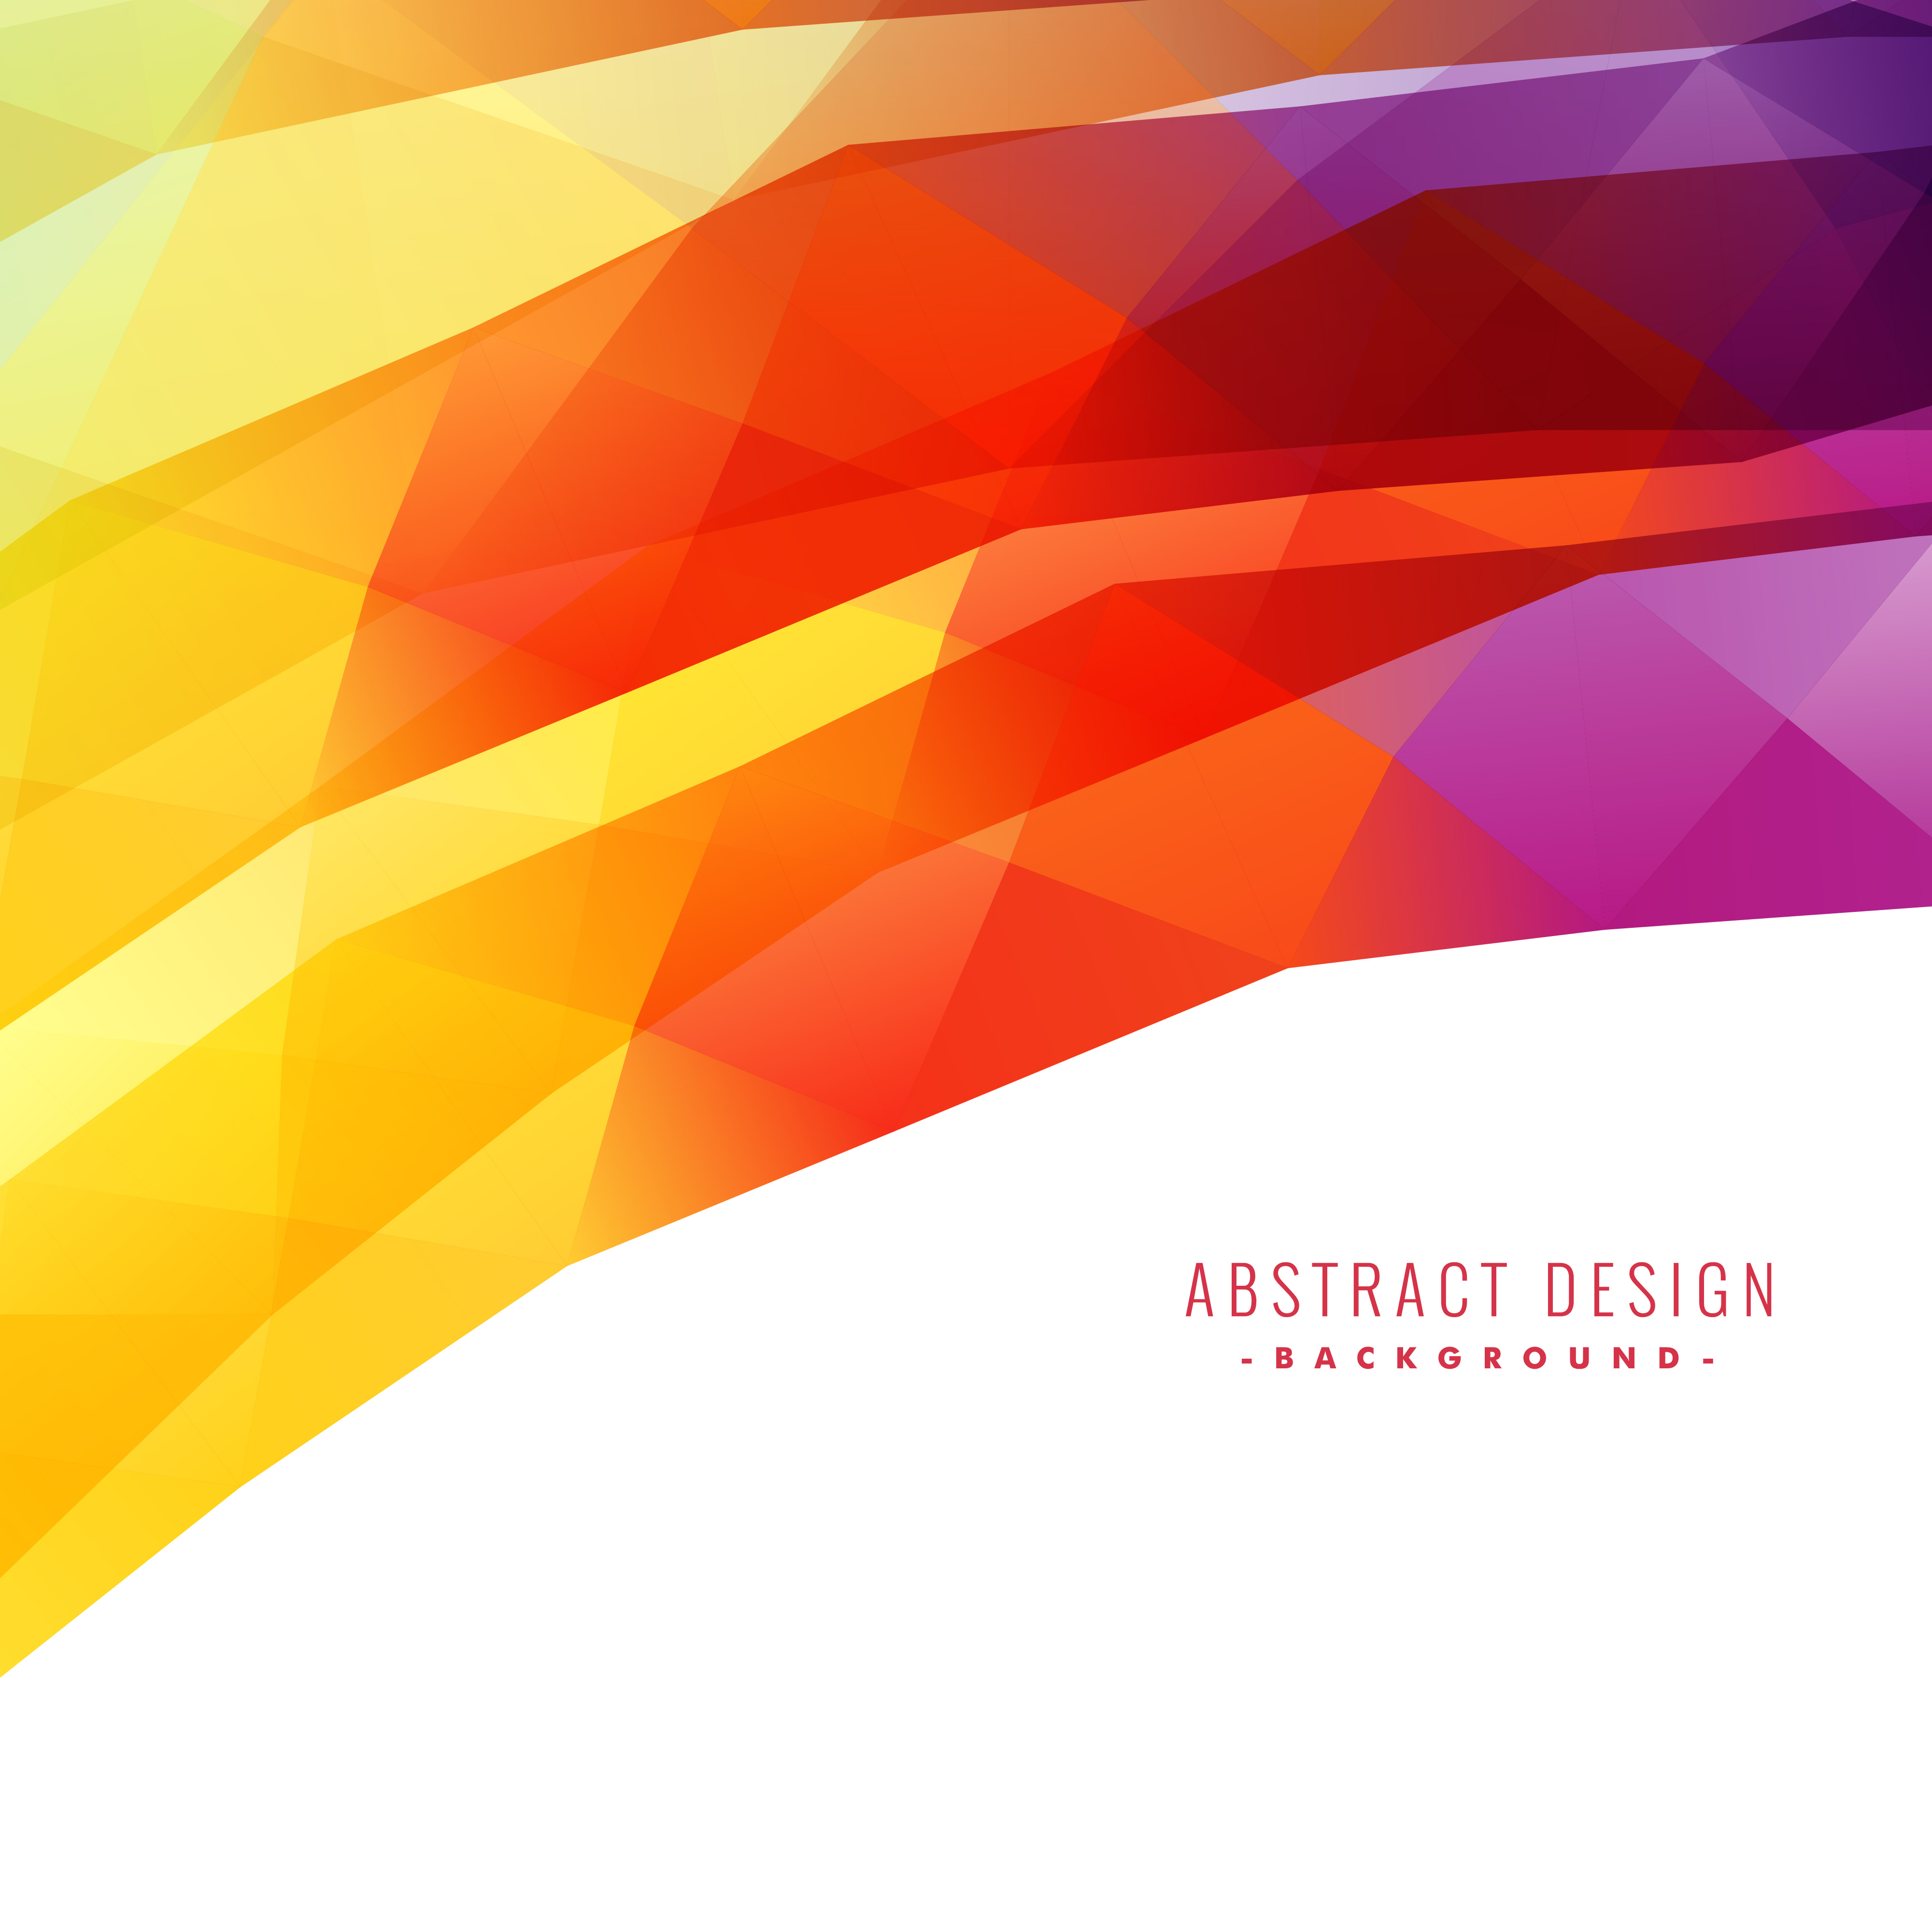 Abstract Background Designs Free Vector Art